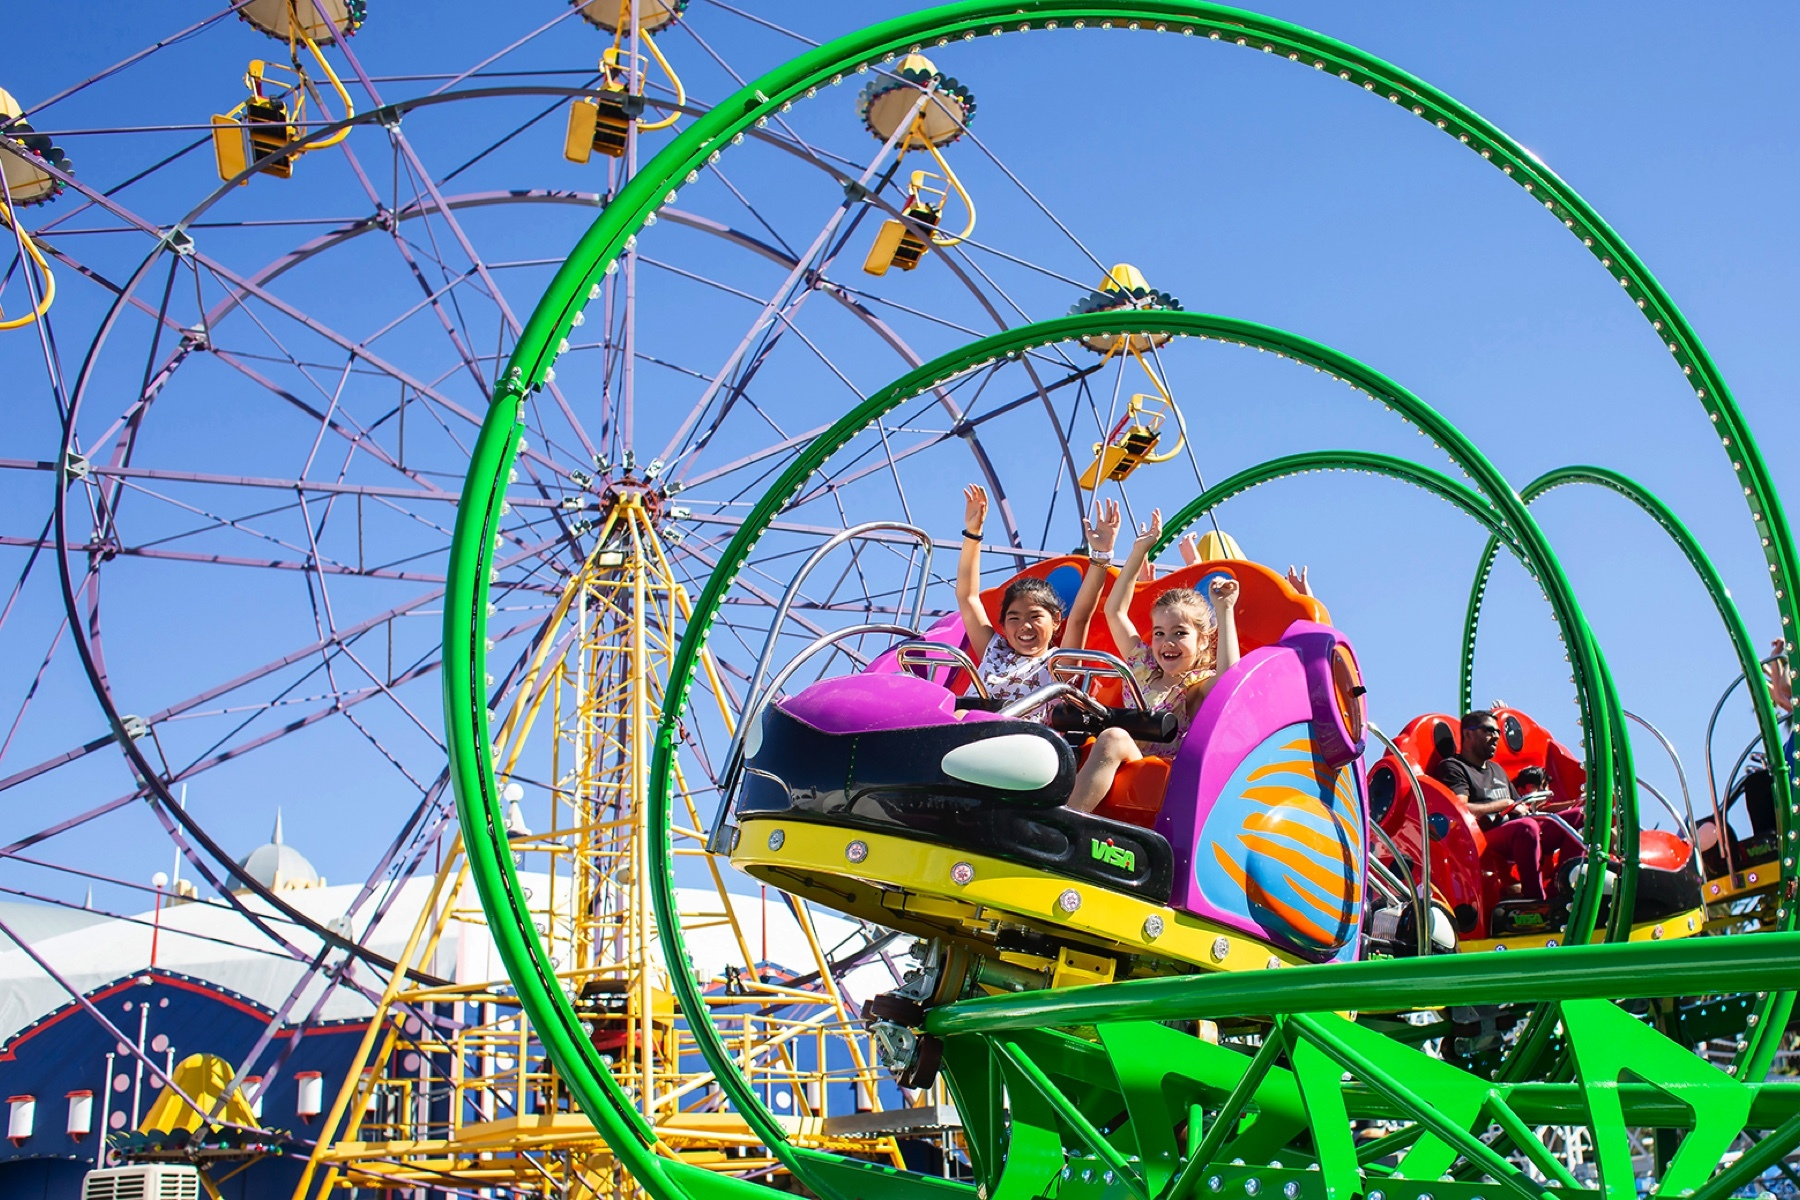 Join The Fantabulous Summer Carnival Of Fun At Luna Park